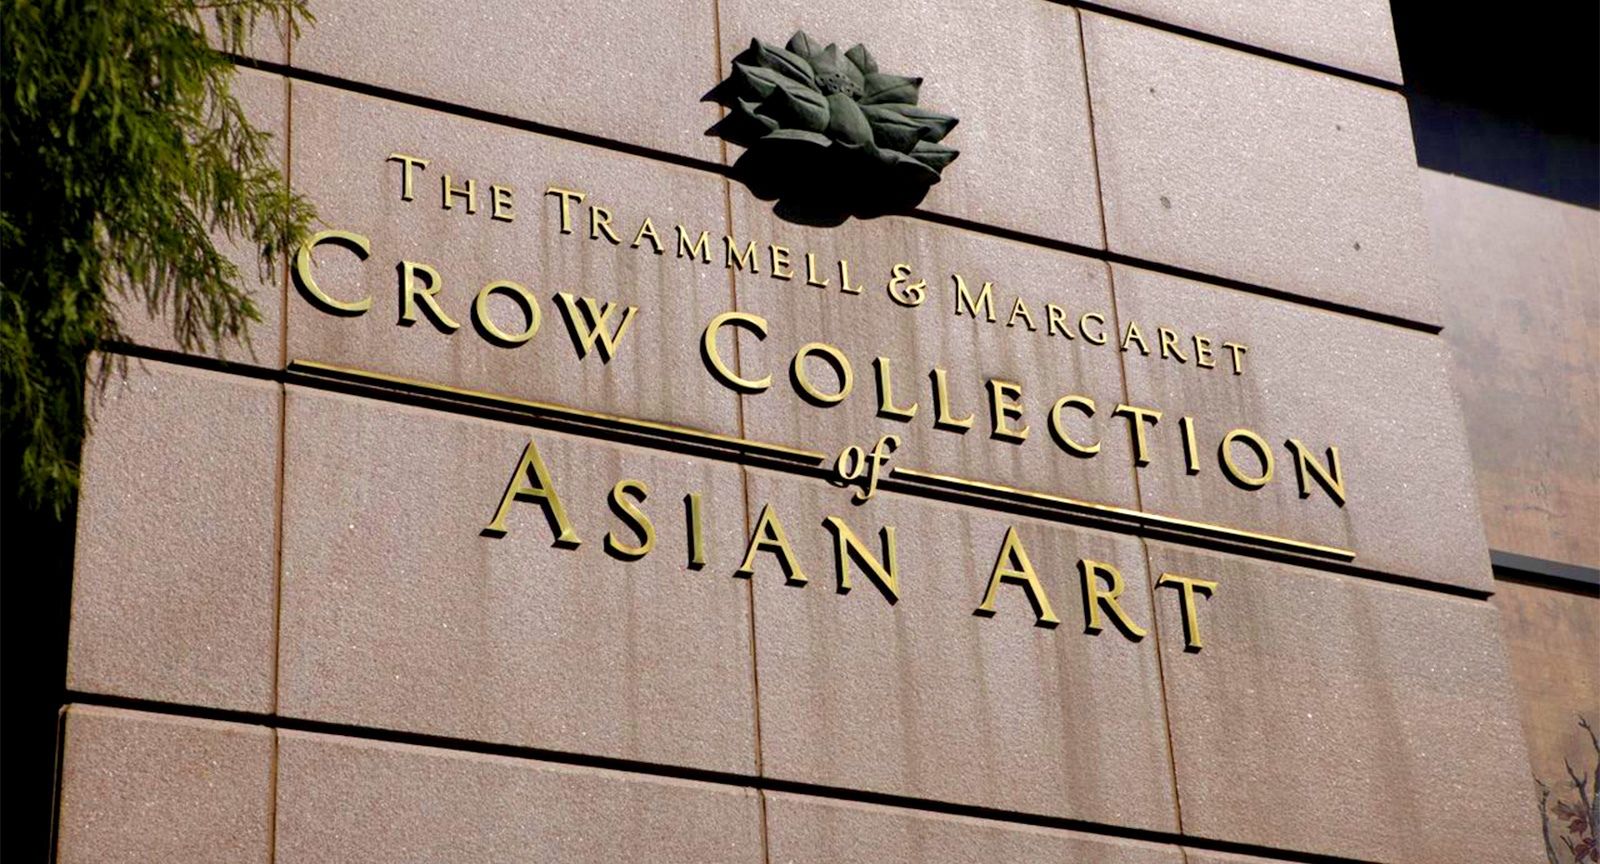 Dallas Arts District Visual Arts Trammell Crow Collection of Asian Art